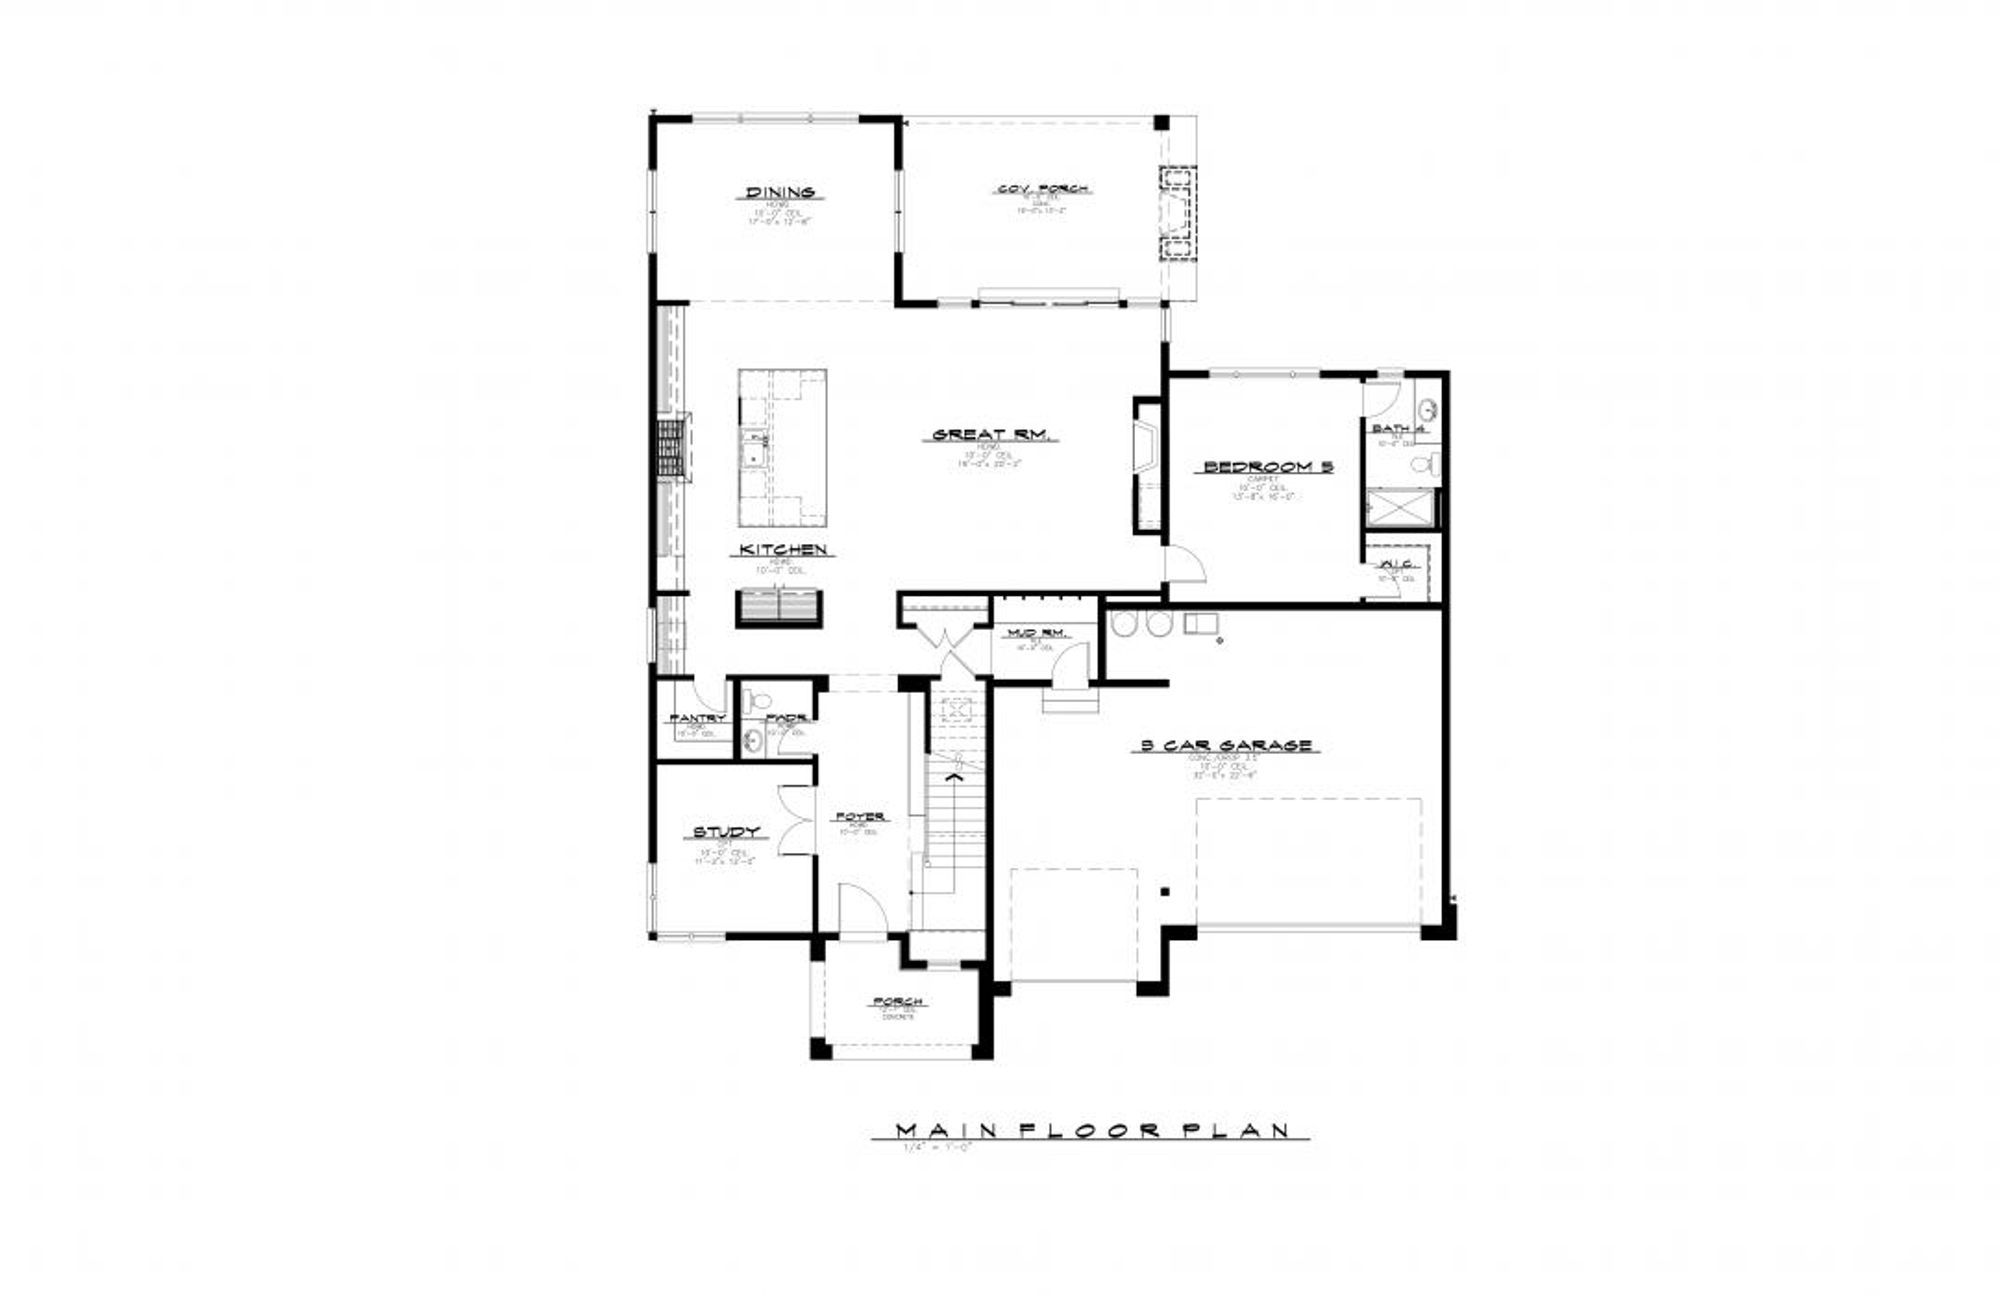 Hawthorne Main Floor Plan